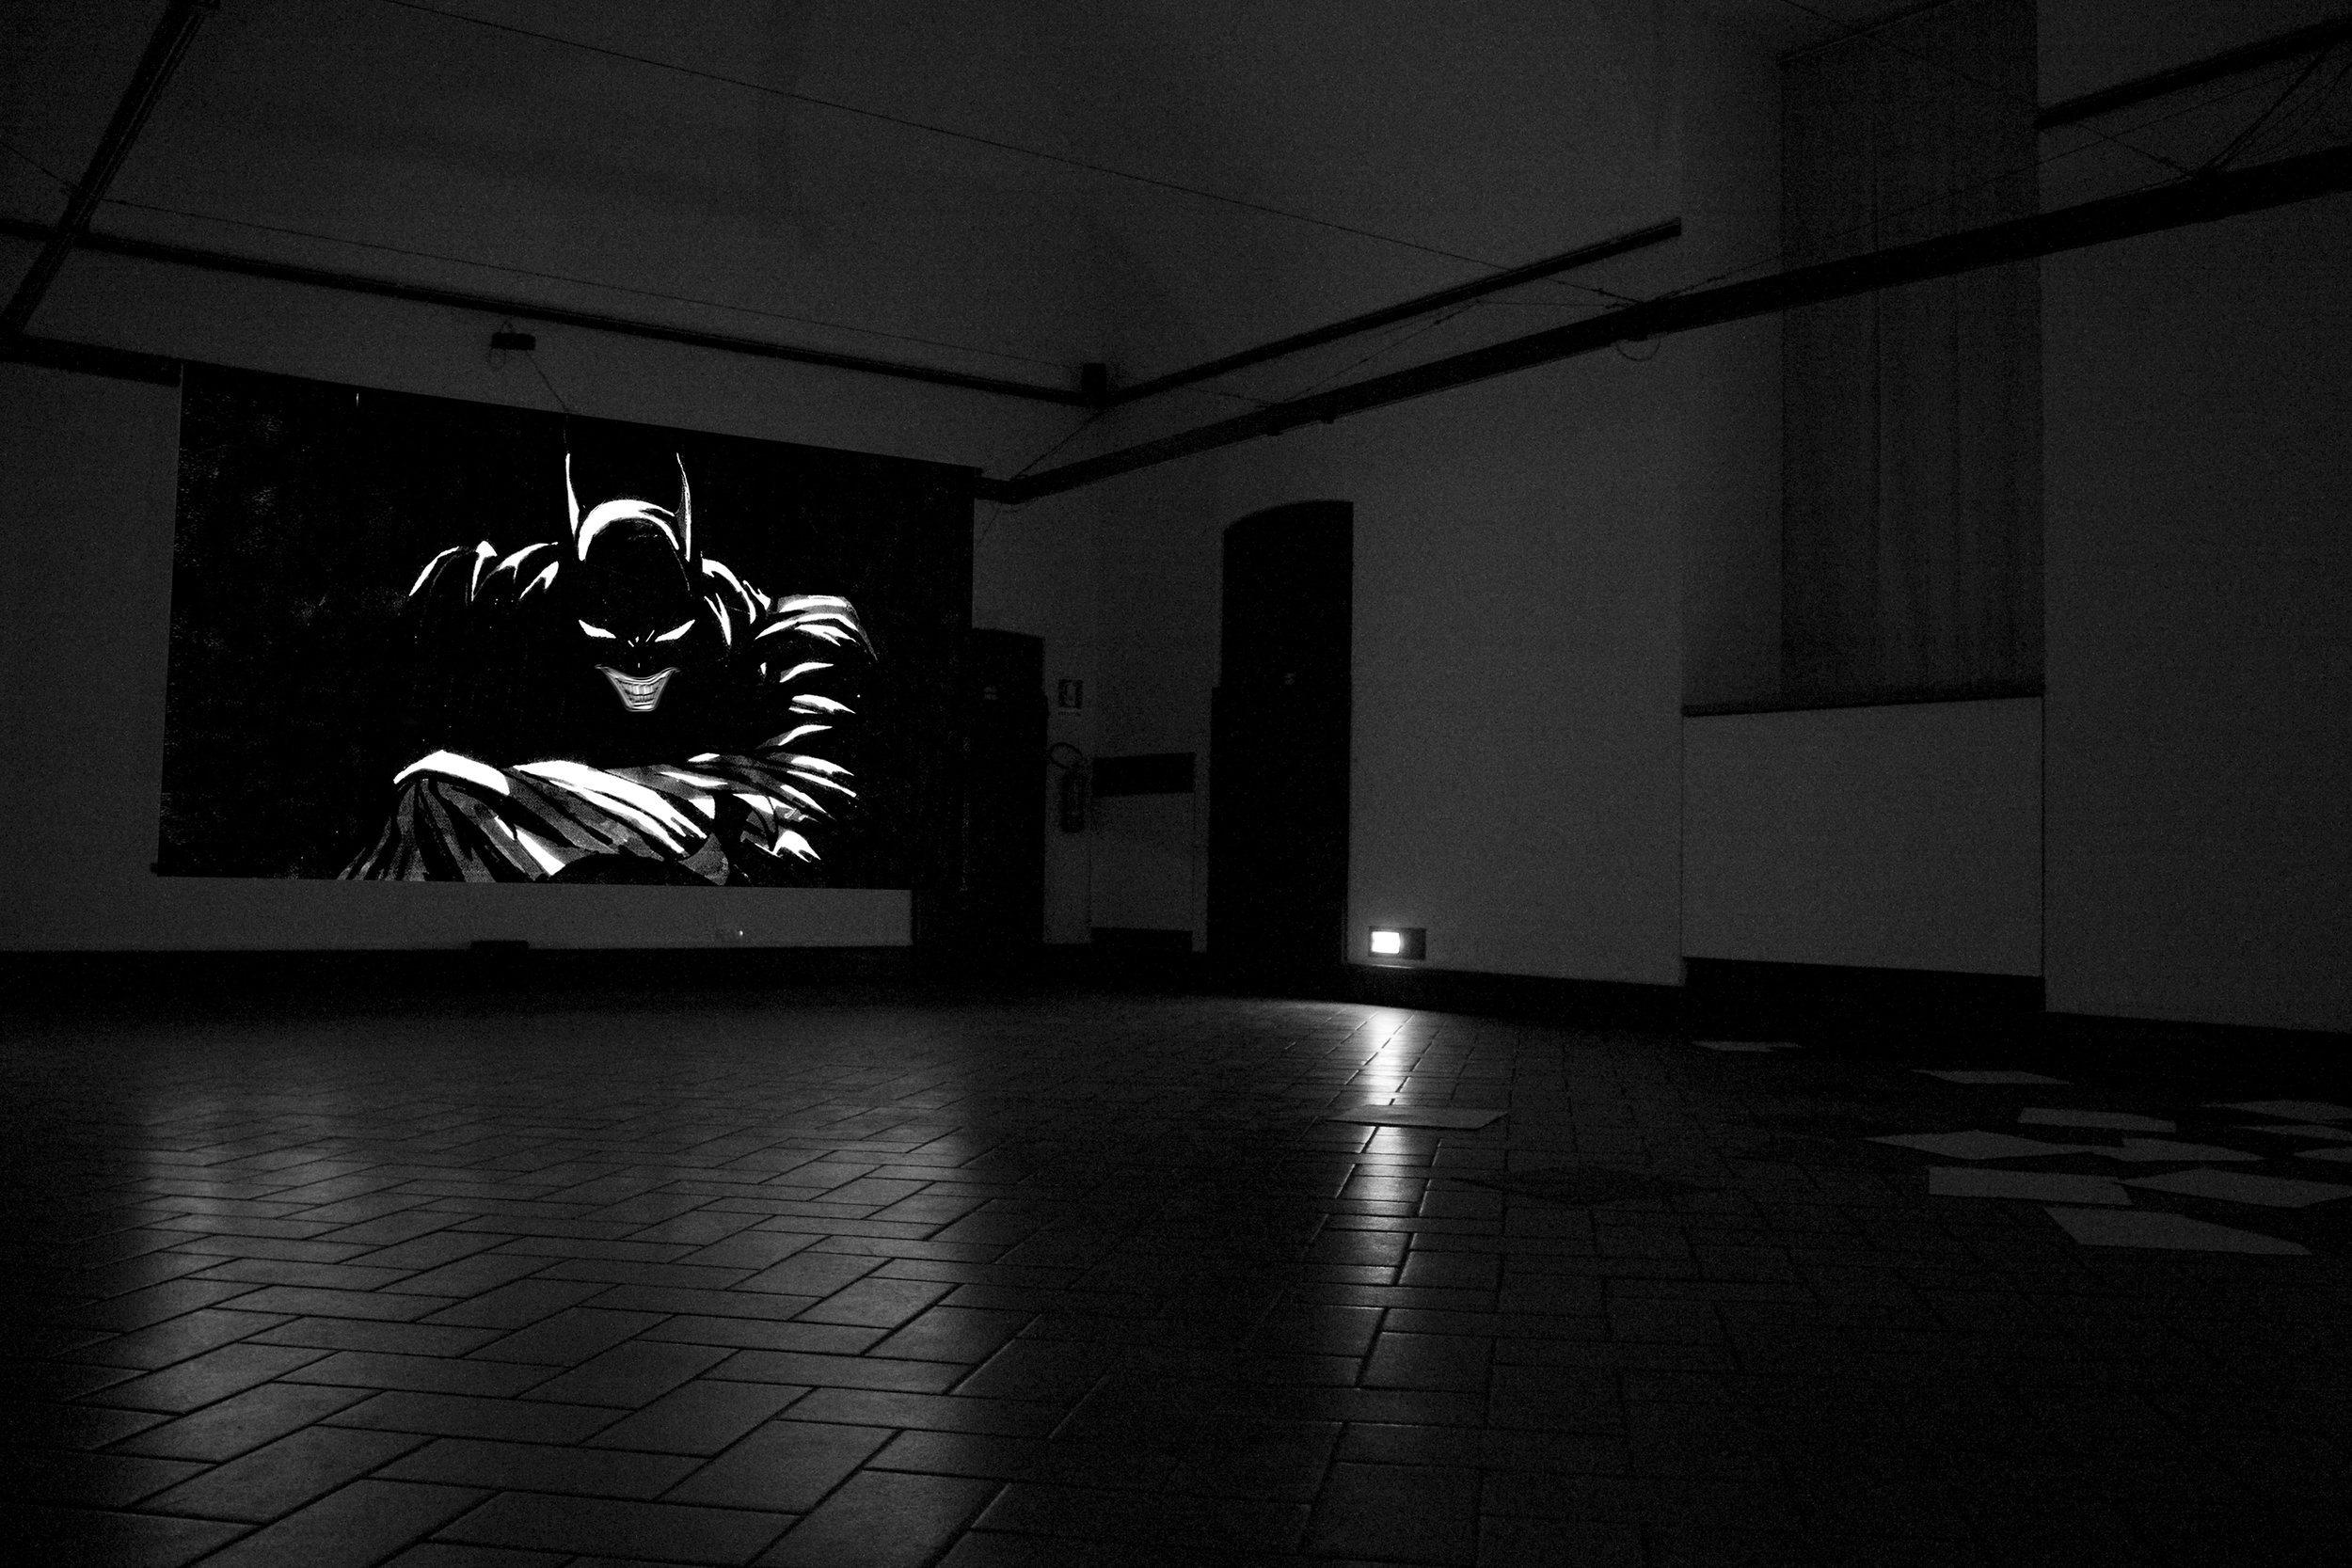 Don't forget the Joker,  2006 . Palazzo Reale, Milan 2010. Installation view. Photo: Alessia De Montis